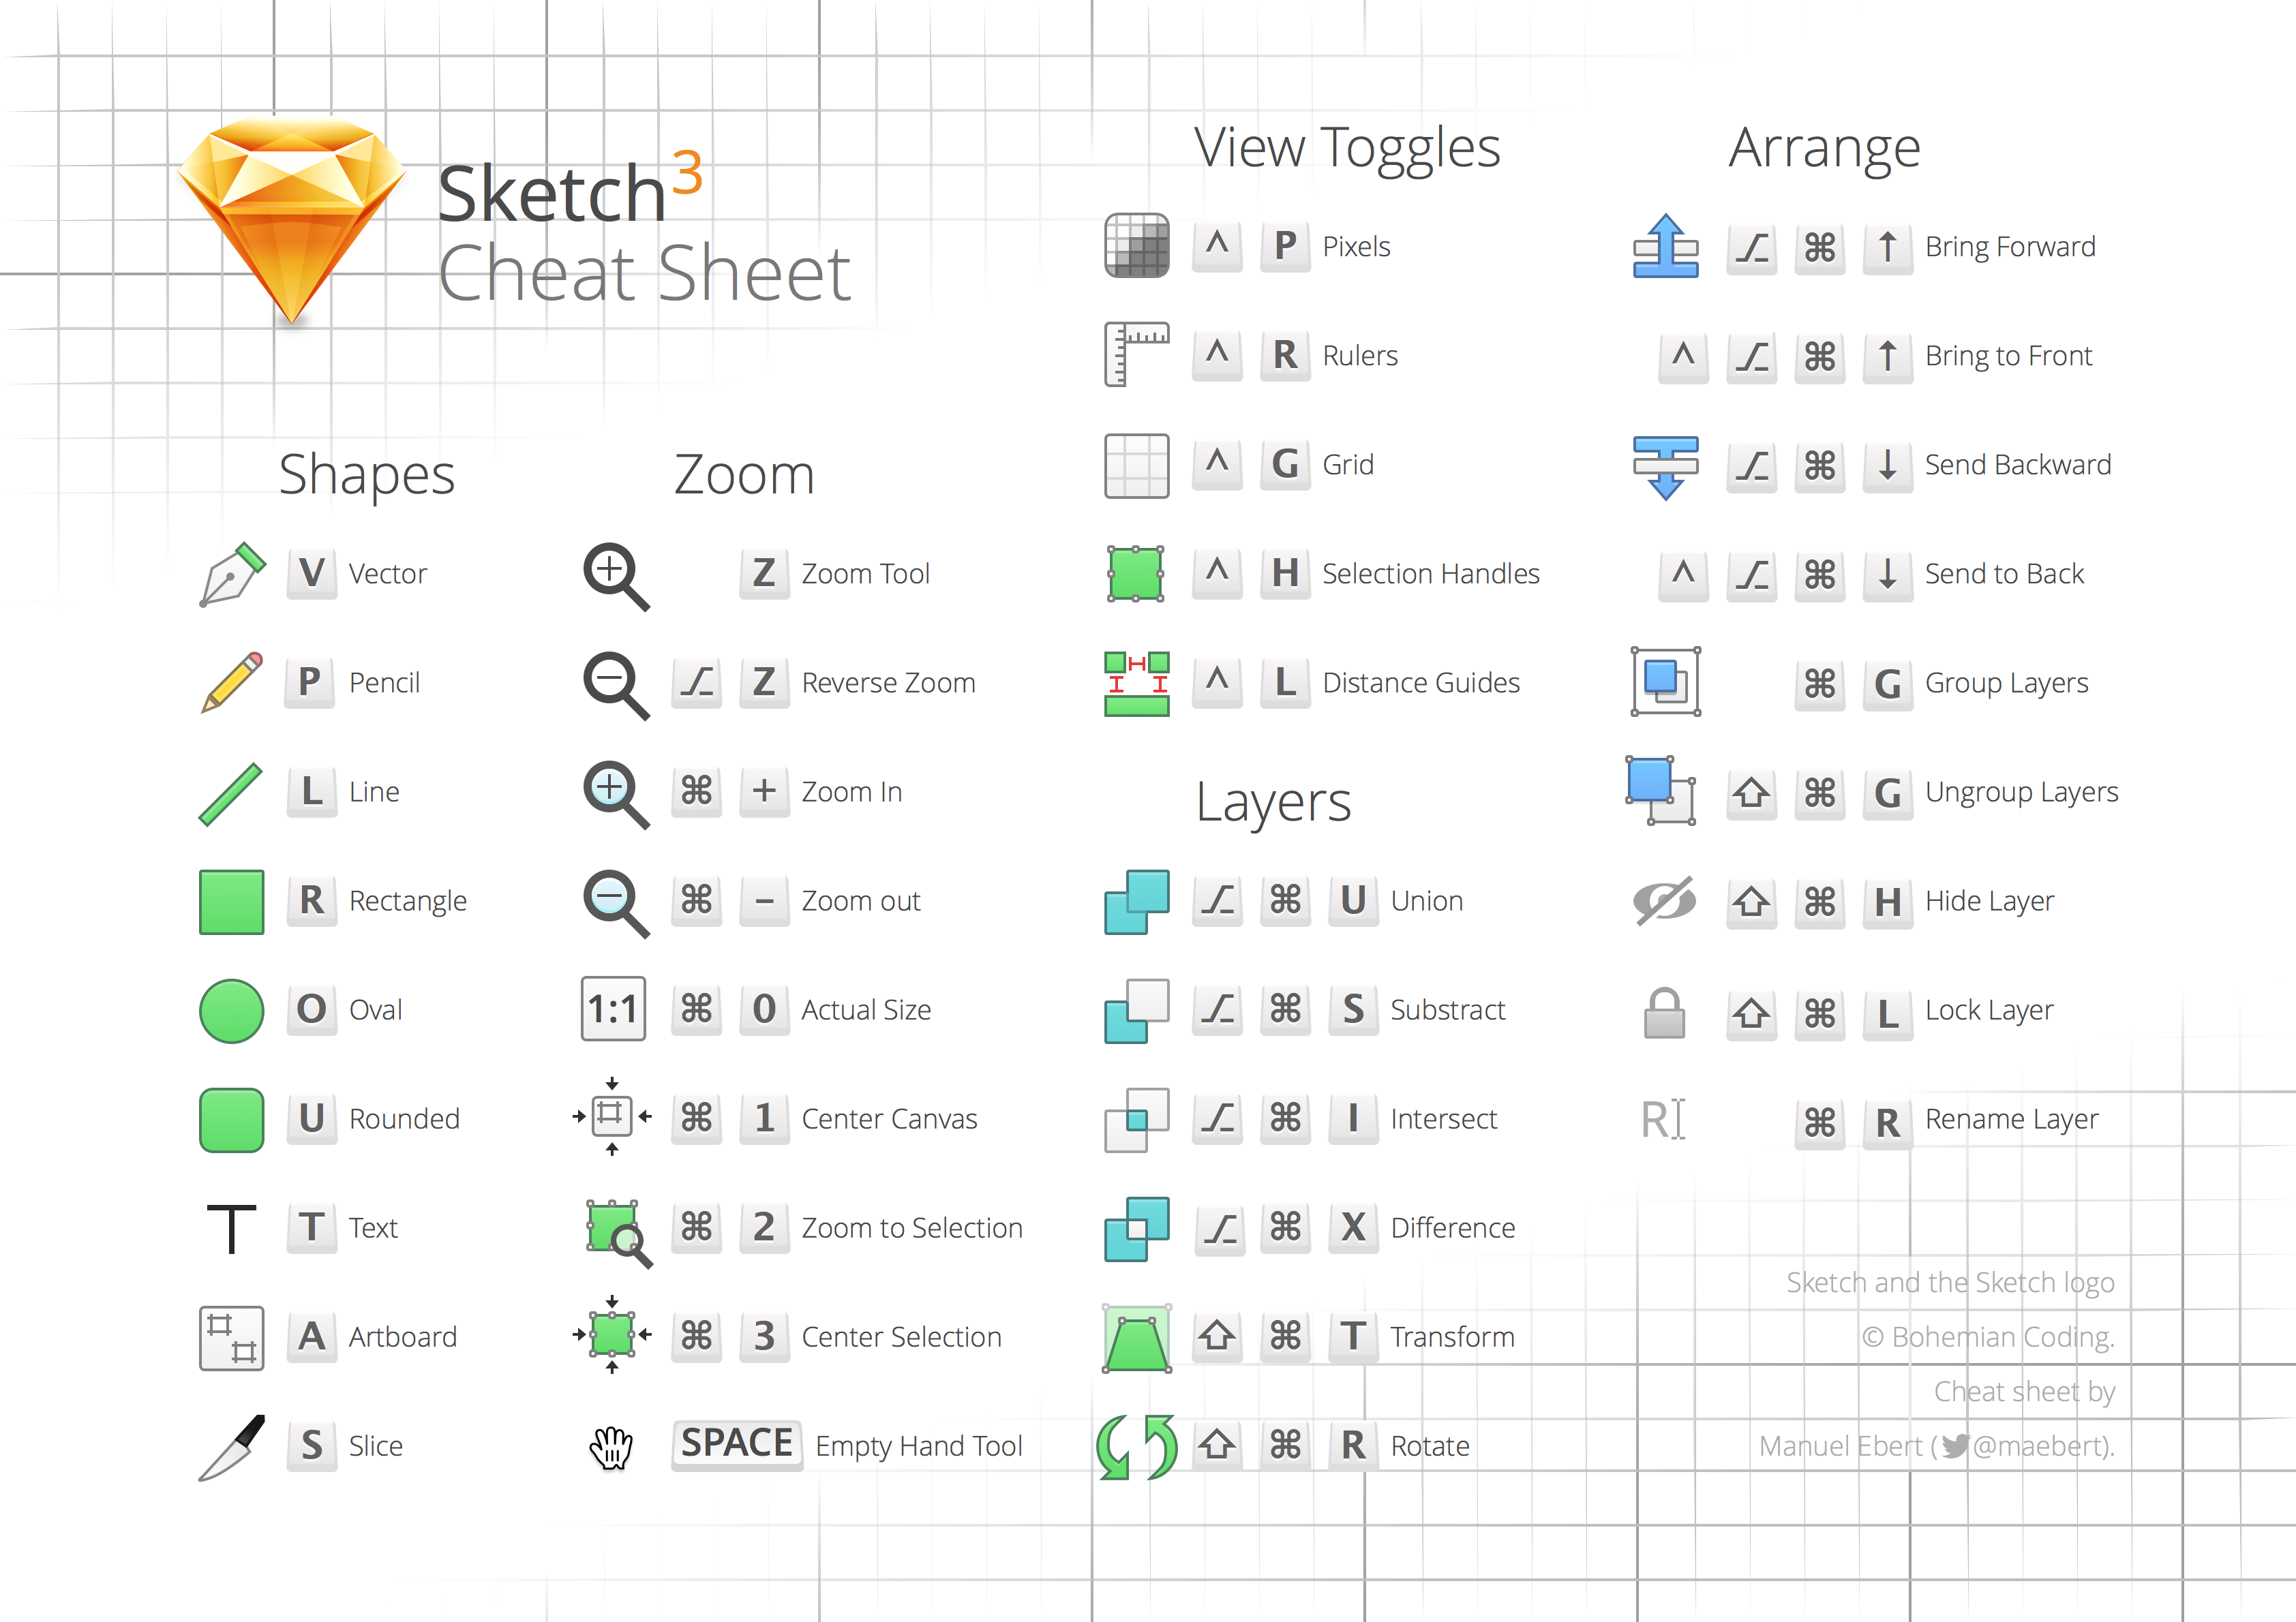 Sketch cheat sheet